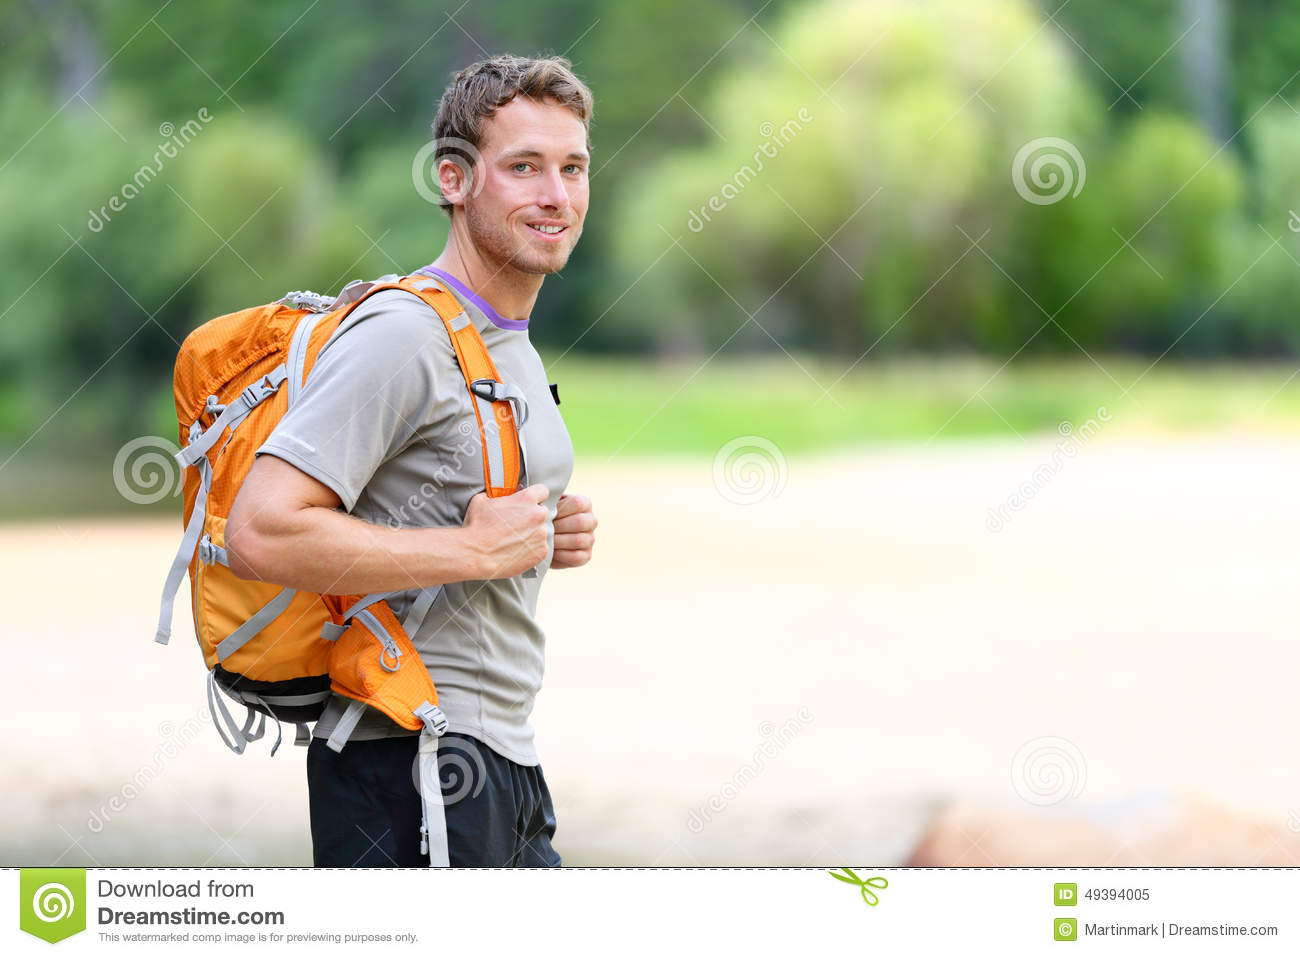 Hiking Man Portrait With Backpack In Nature Stock Photo